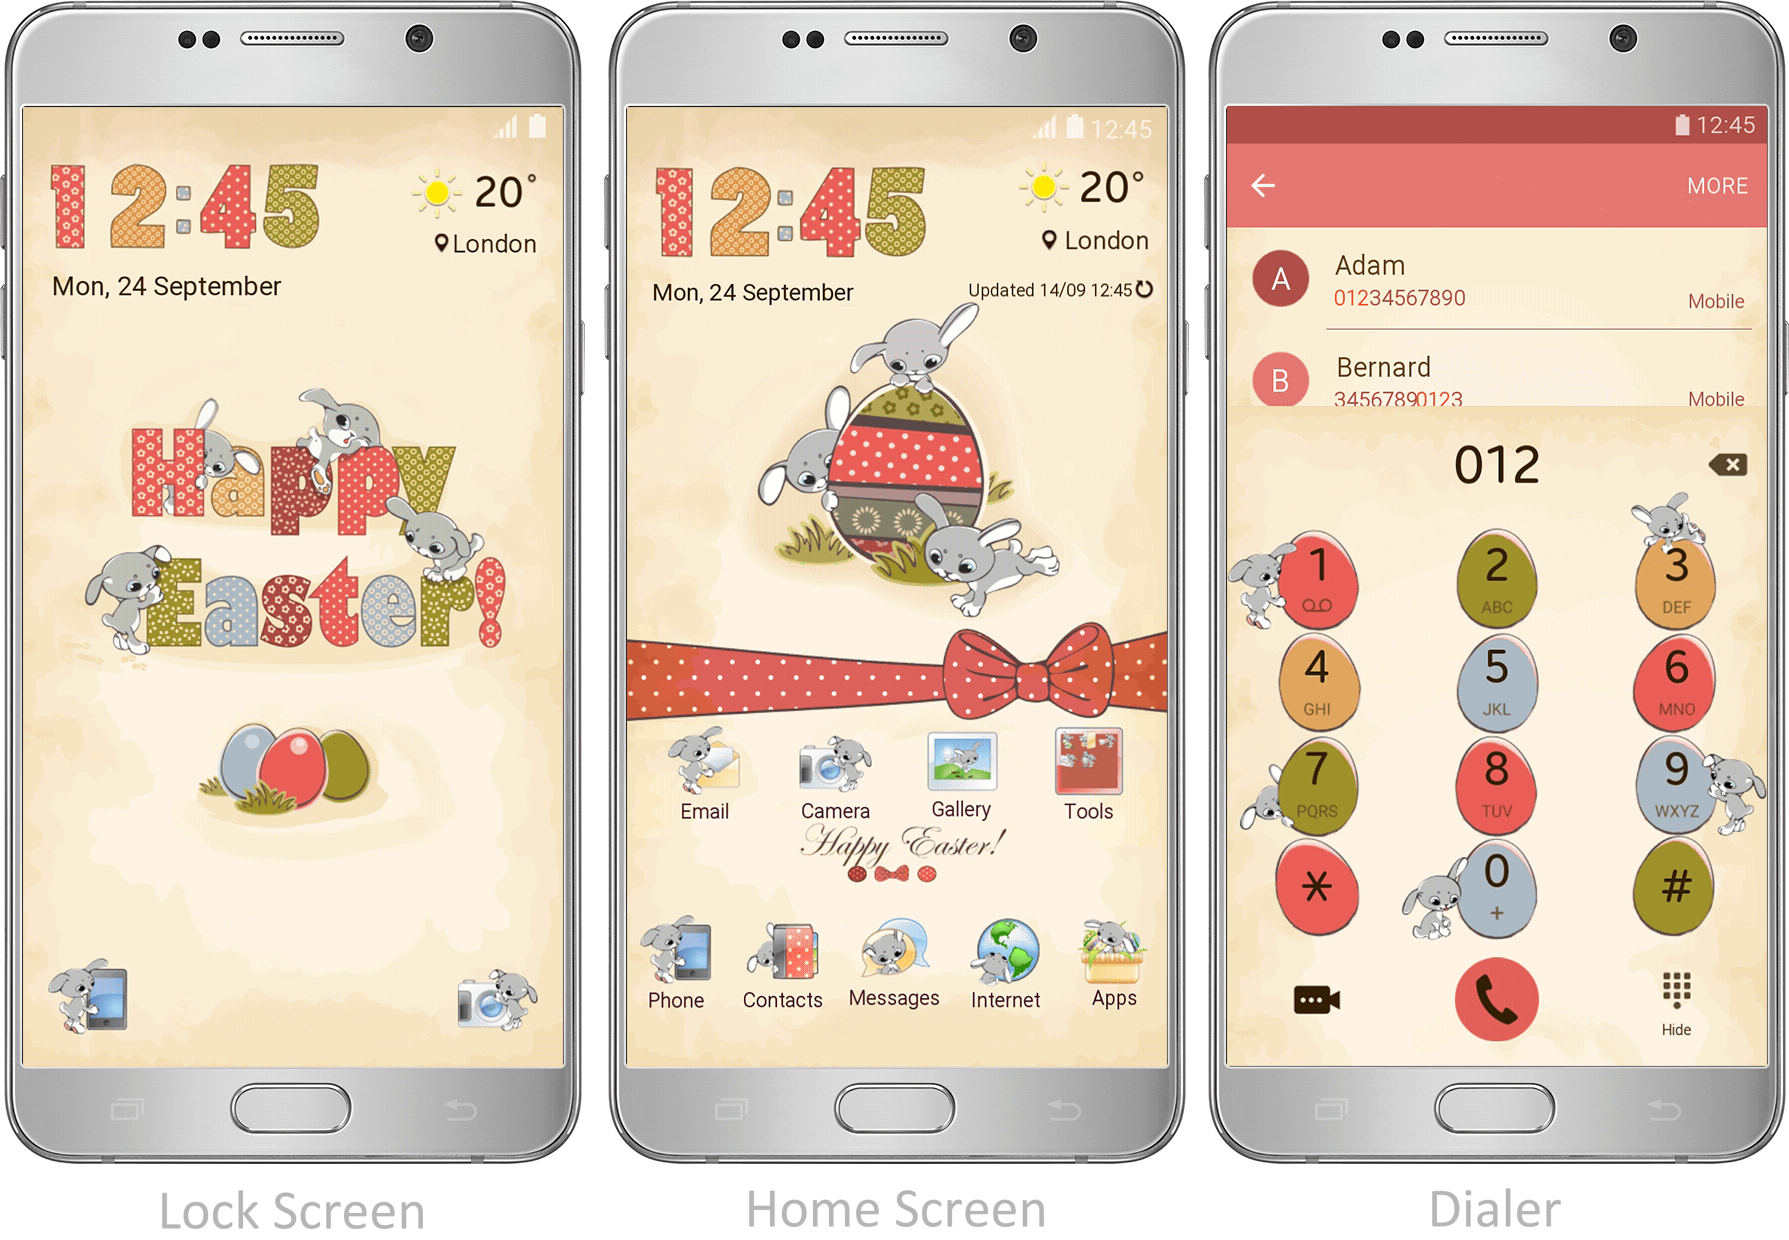 your decorate custom these features with bunny egg and easterbunnies screen this easter an dial rw echo decor theme animated cute phone lock icons visuals pad bunnies